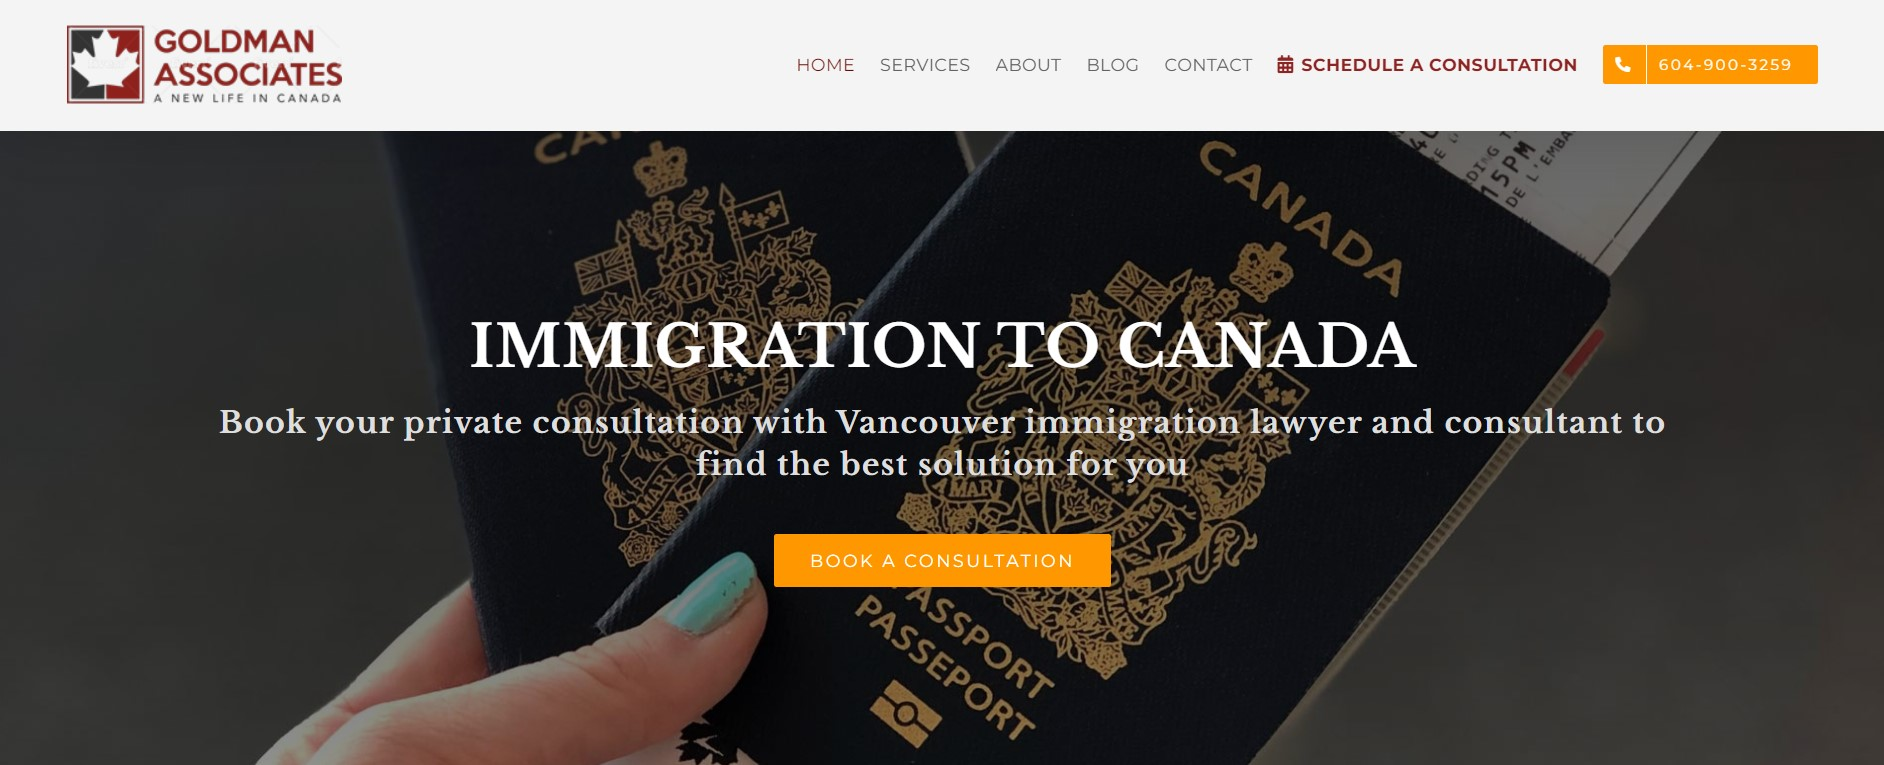 goldman associates immigration attorney in vancouver